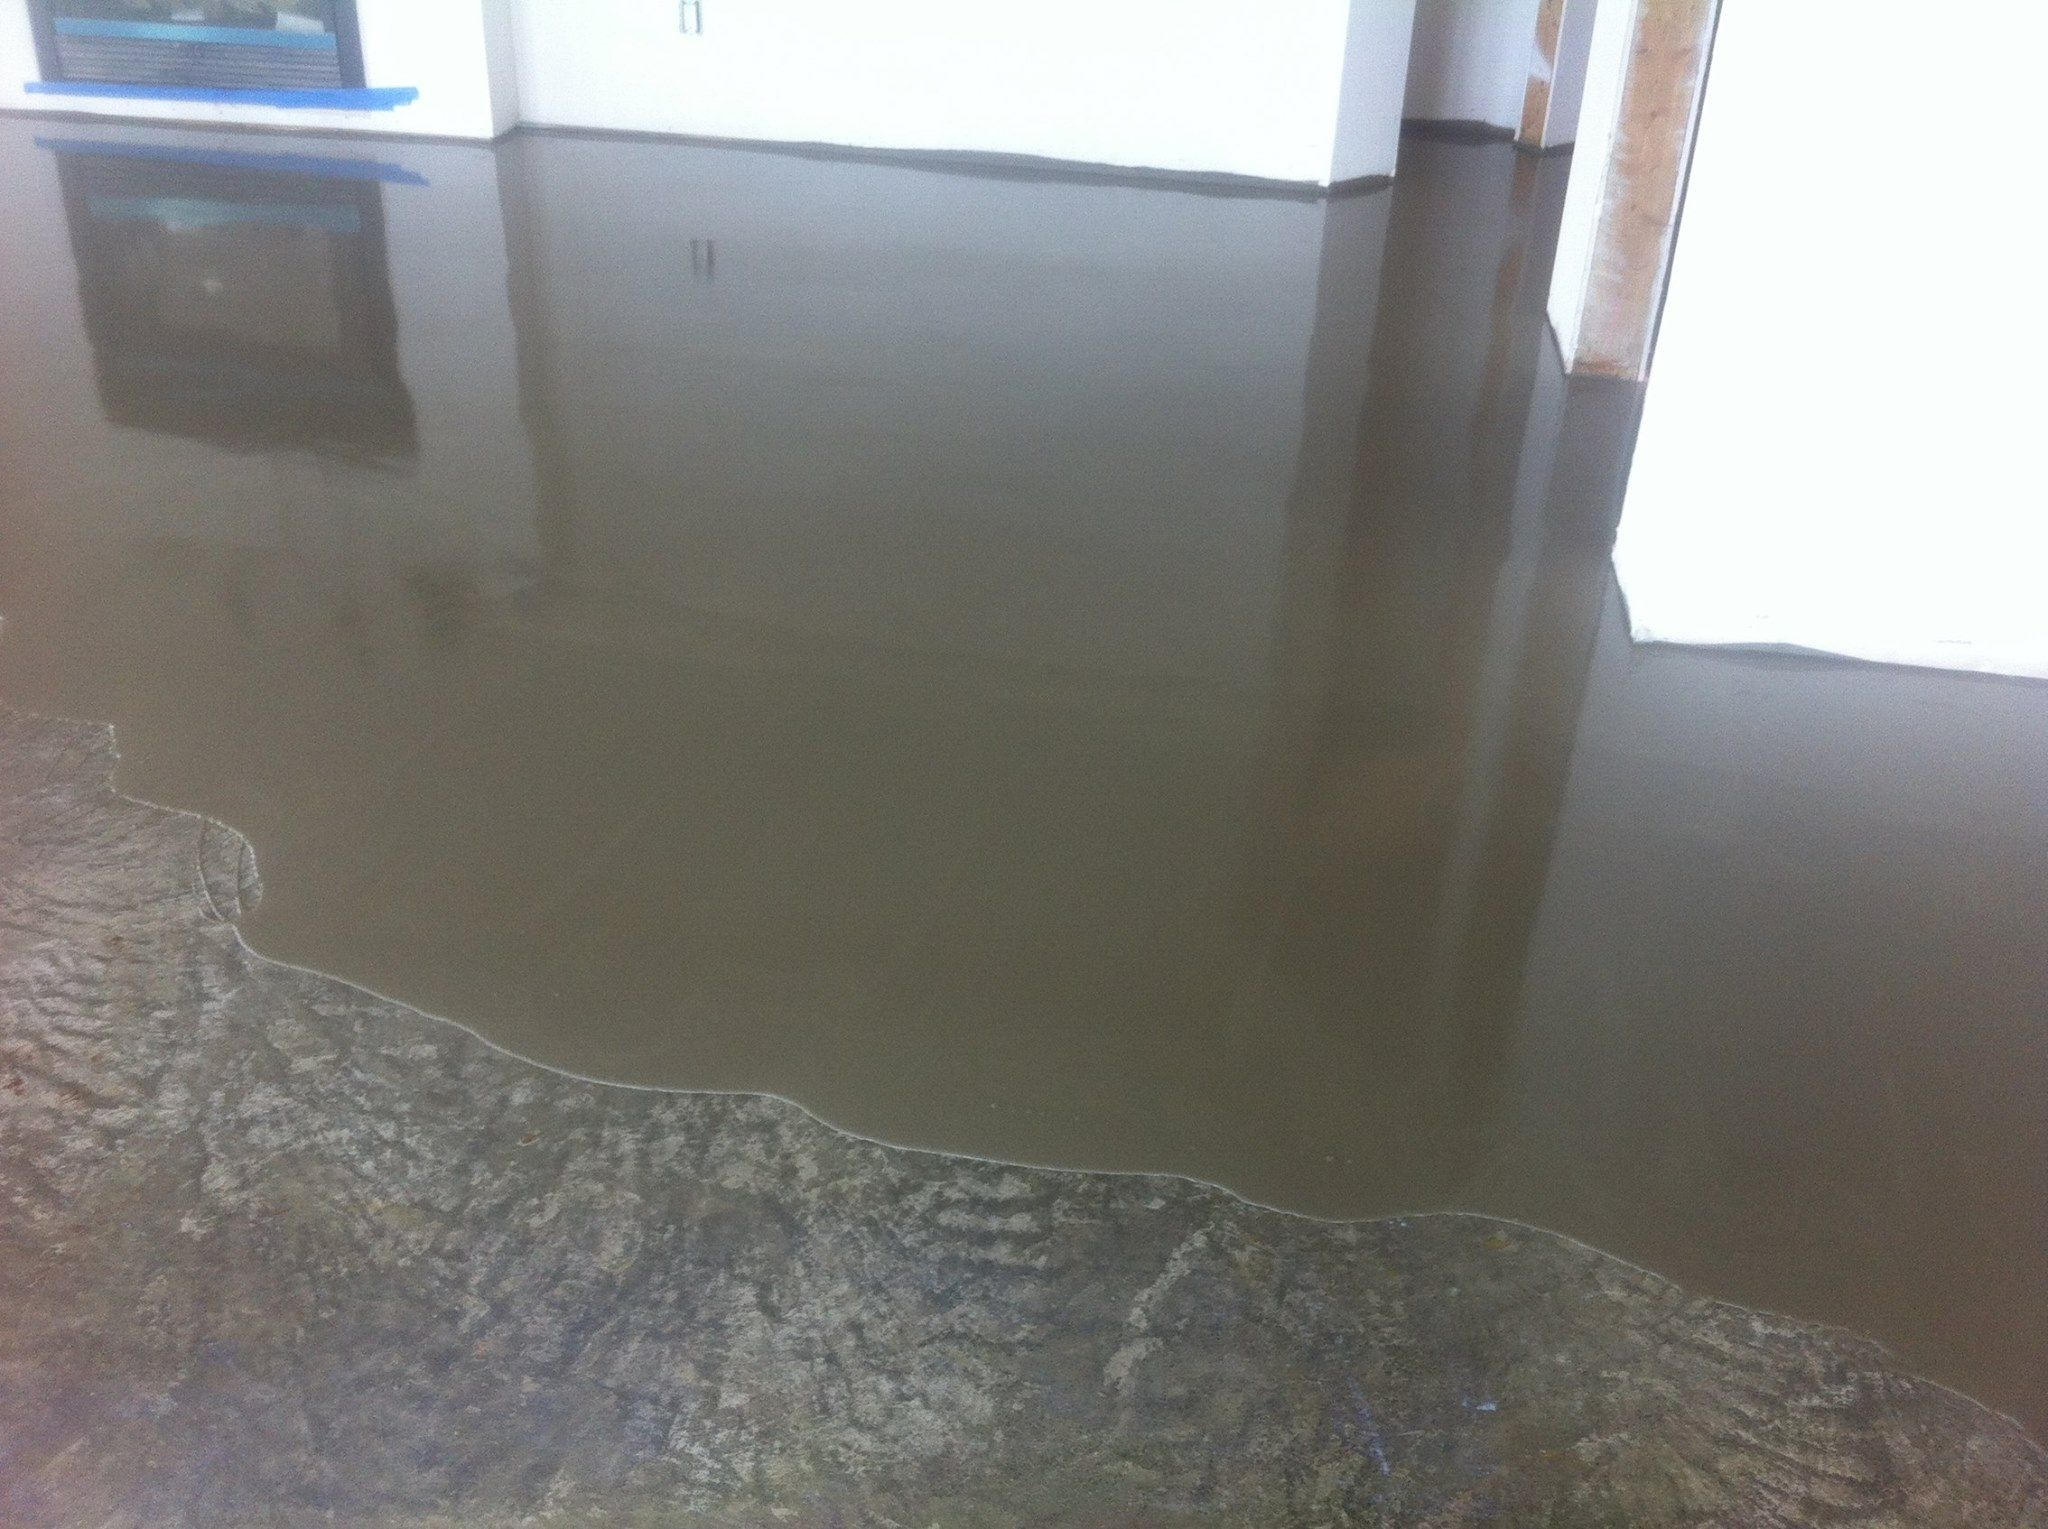 Leveling cement floor for ceramic tile httpnextsoft21 leveling cement floor for ceramic tile dailygadgetfo Gallery